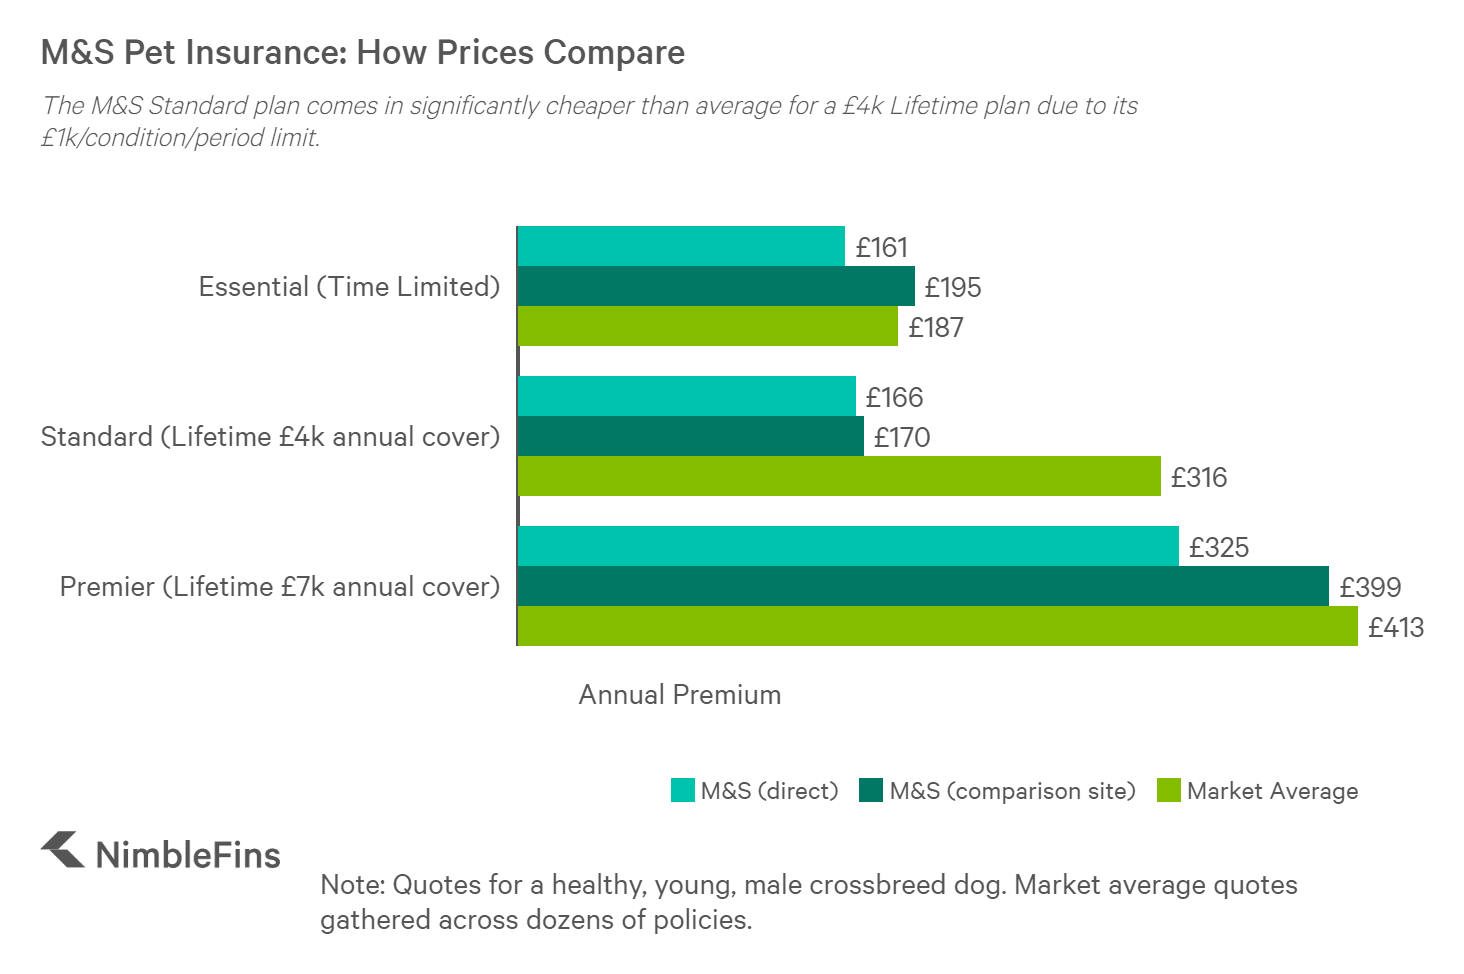 How M&S pet insurance prices compare